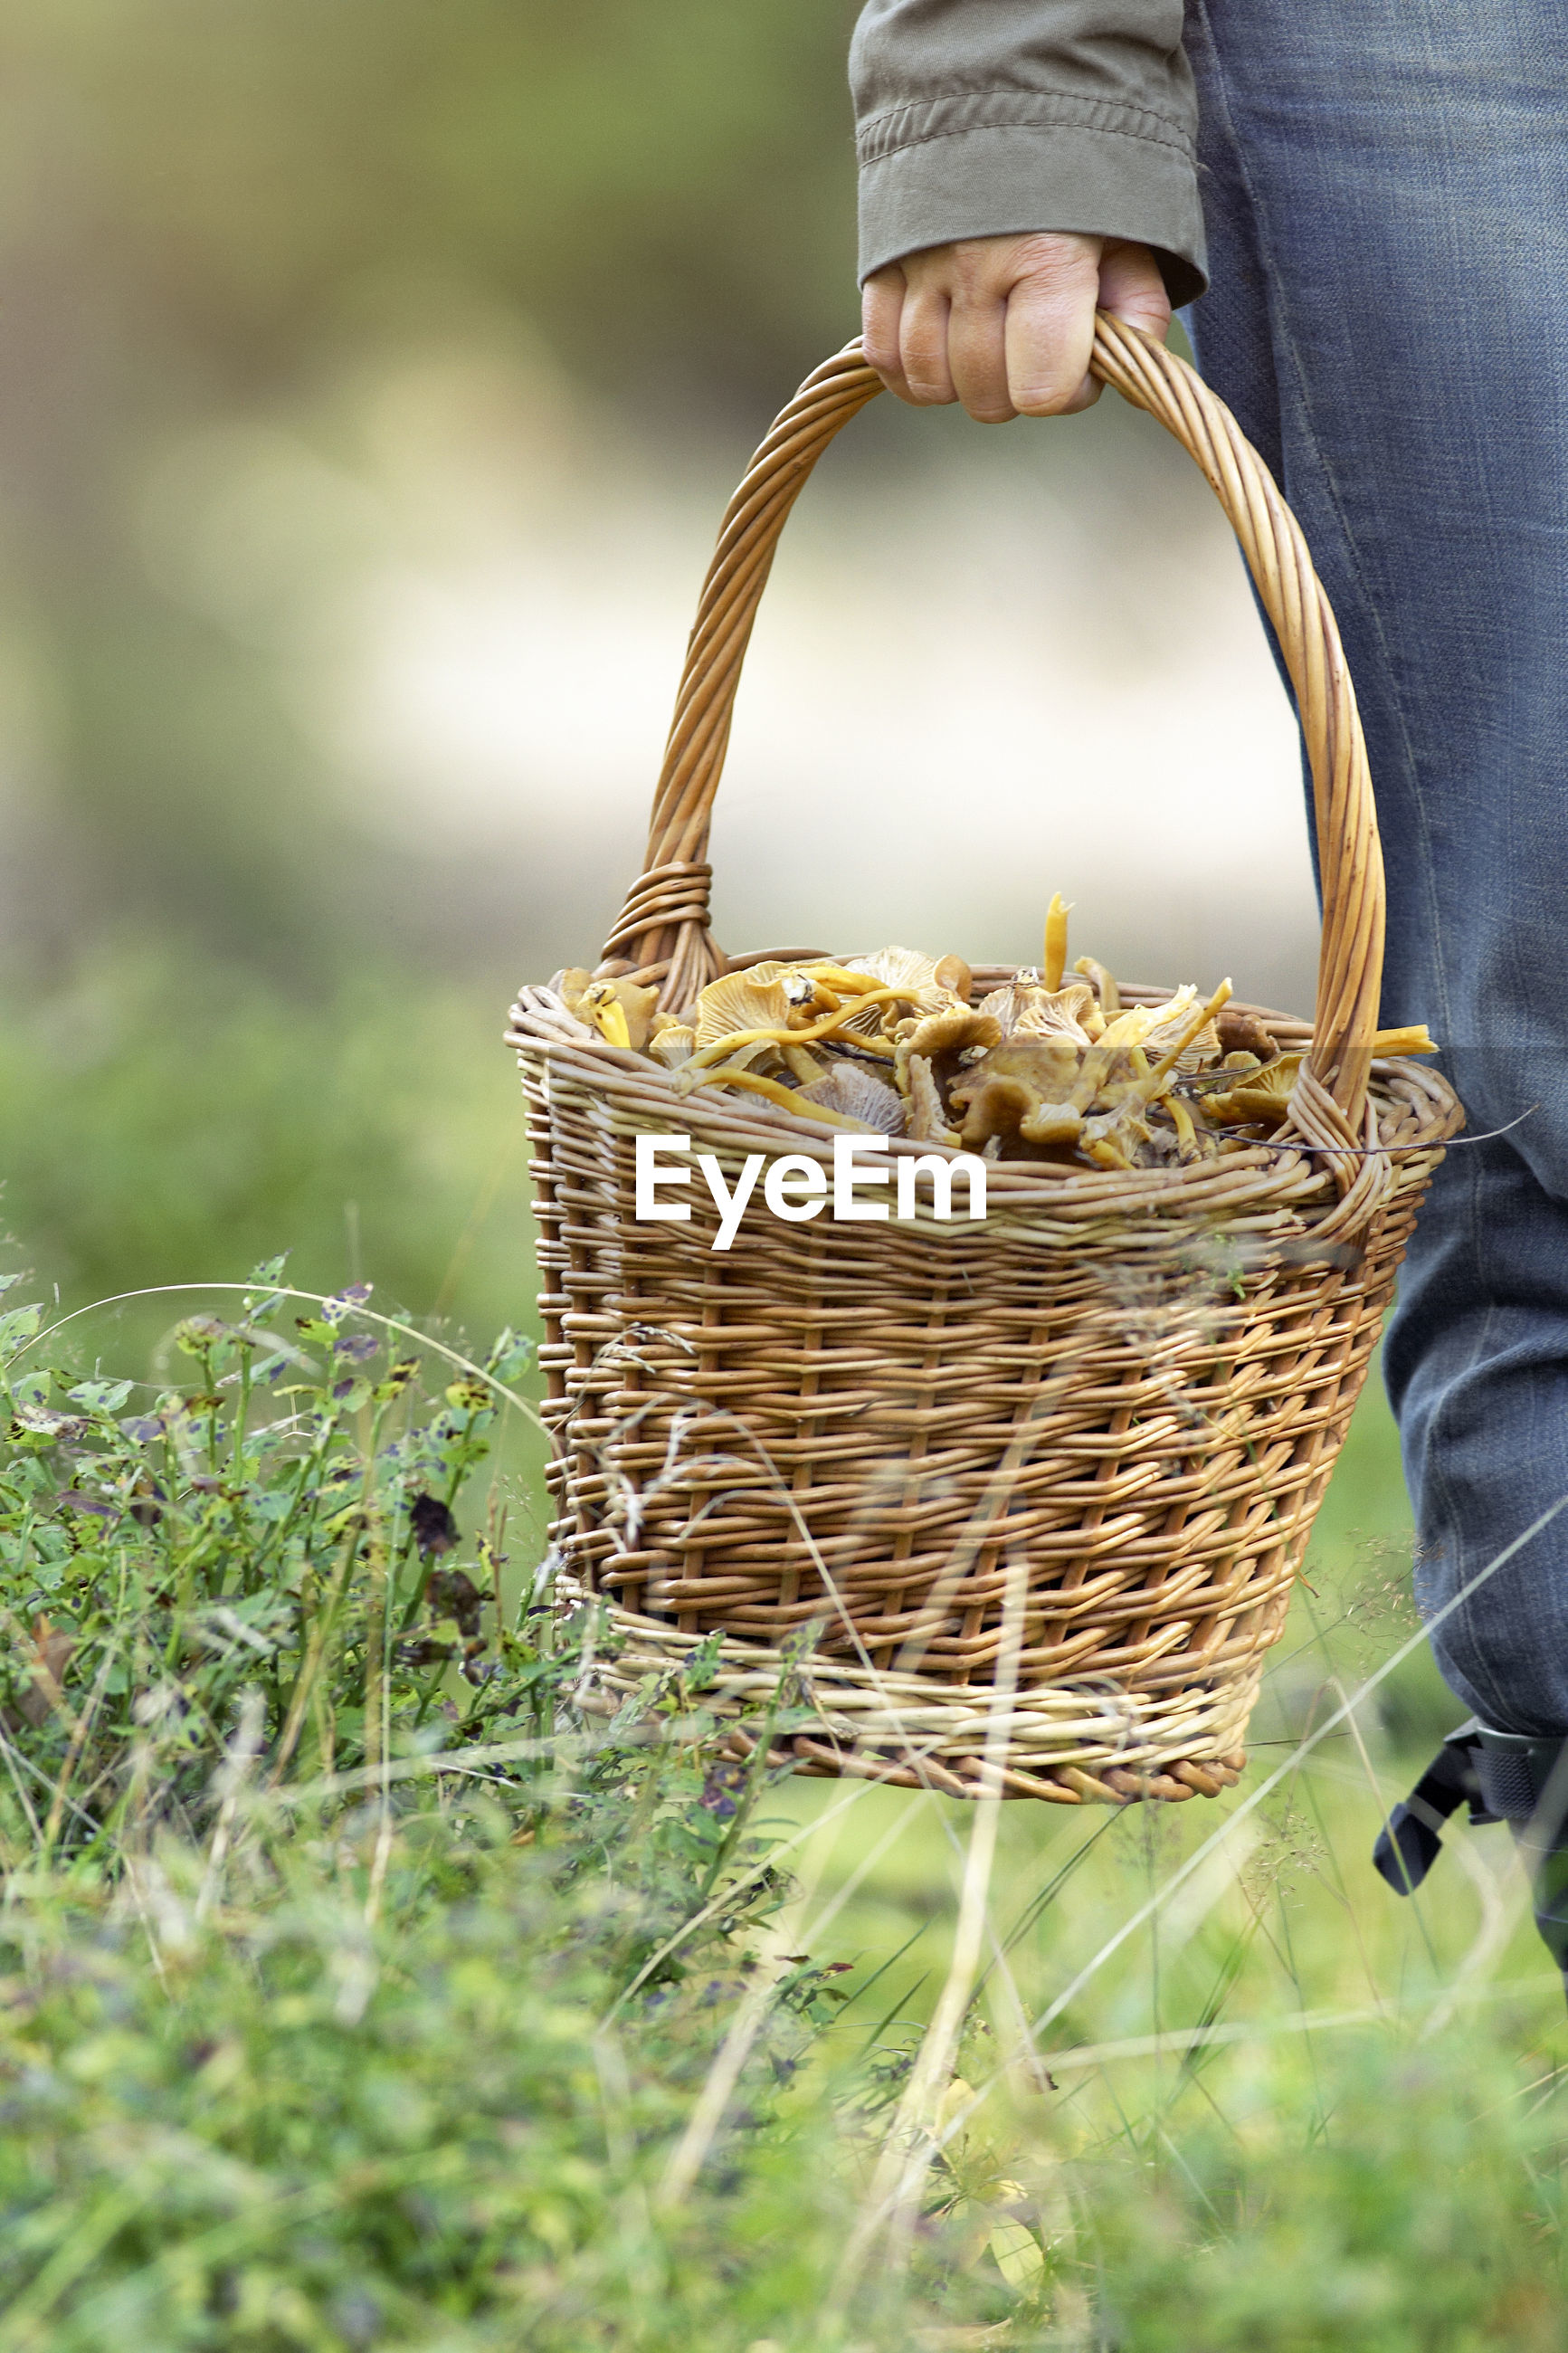 PERSON HOLDING BASKET IN FIELD